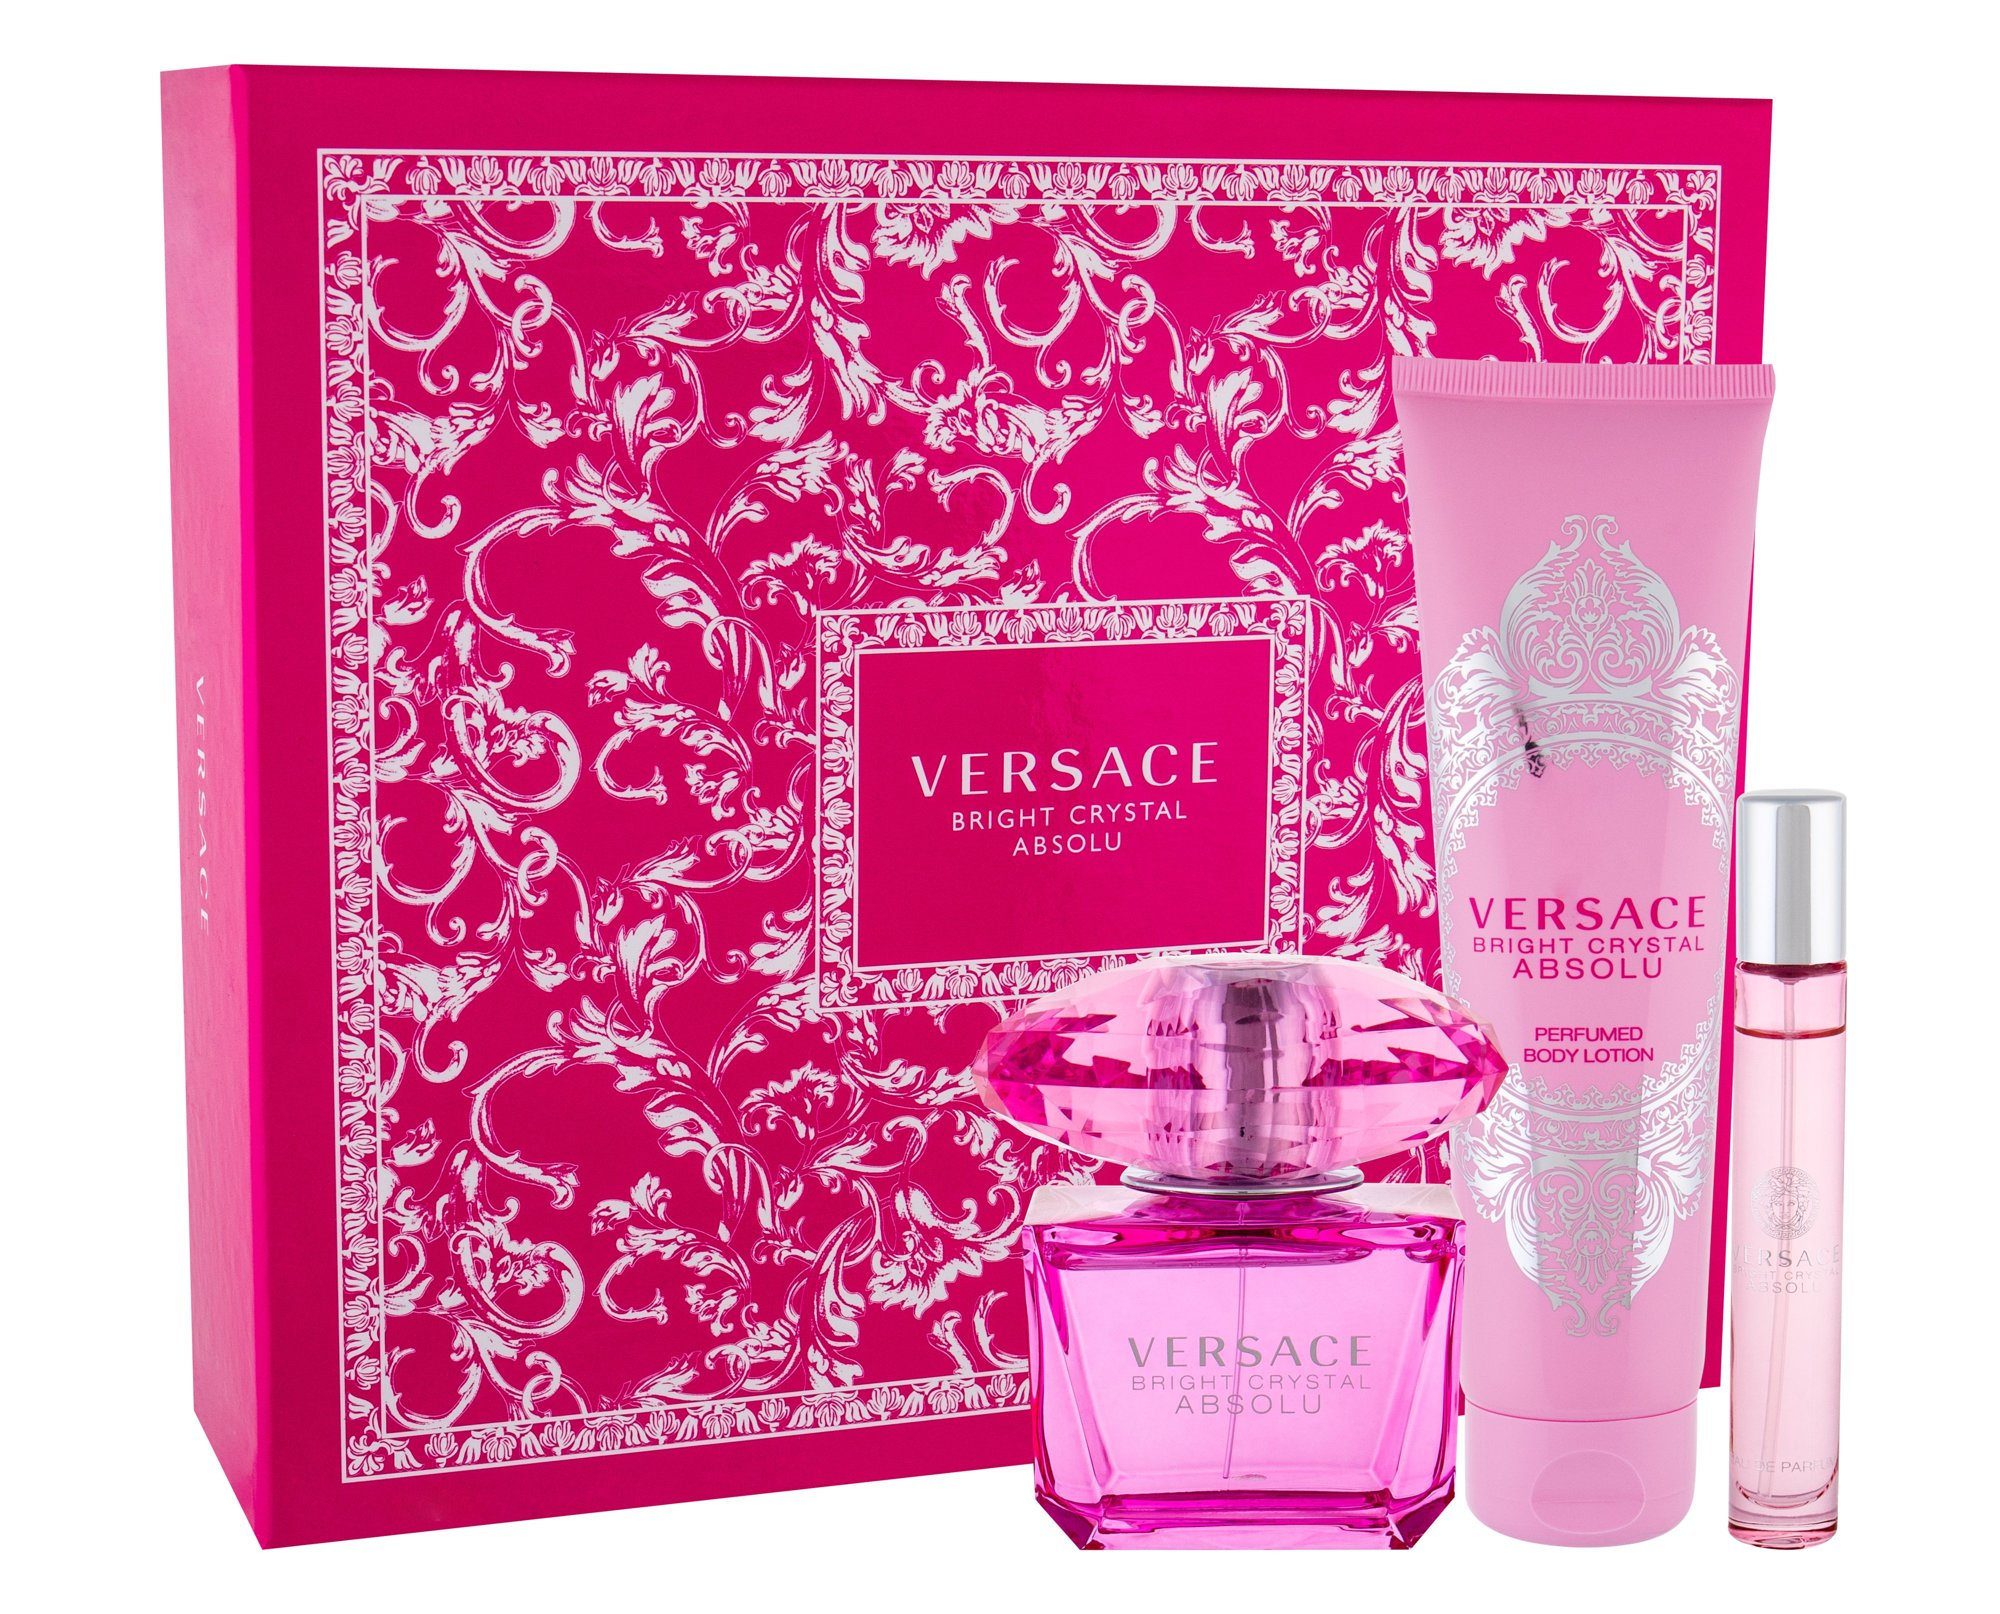 Versace Bright Crystal Eau de Parfum 90ml